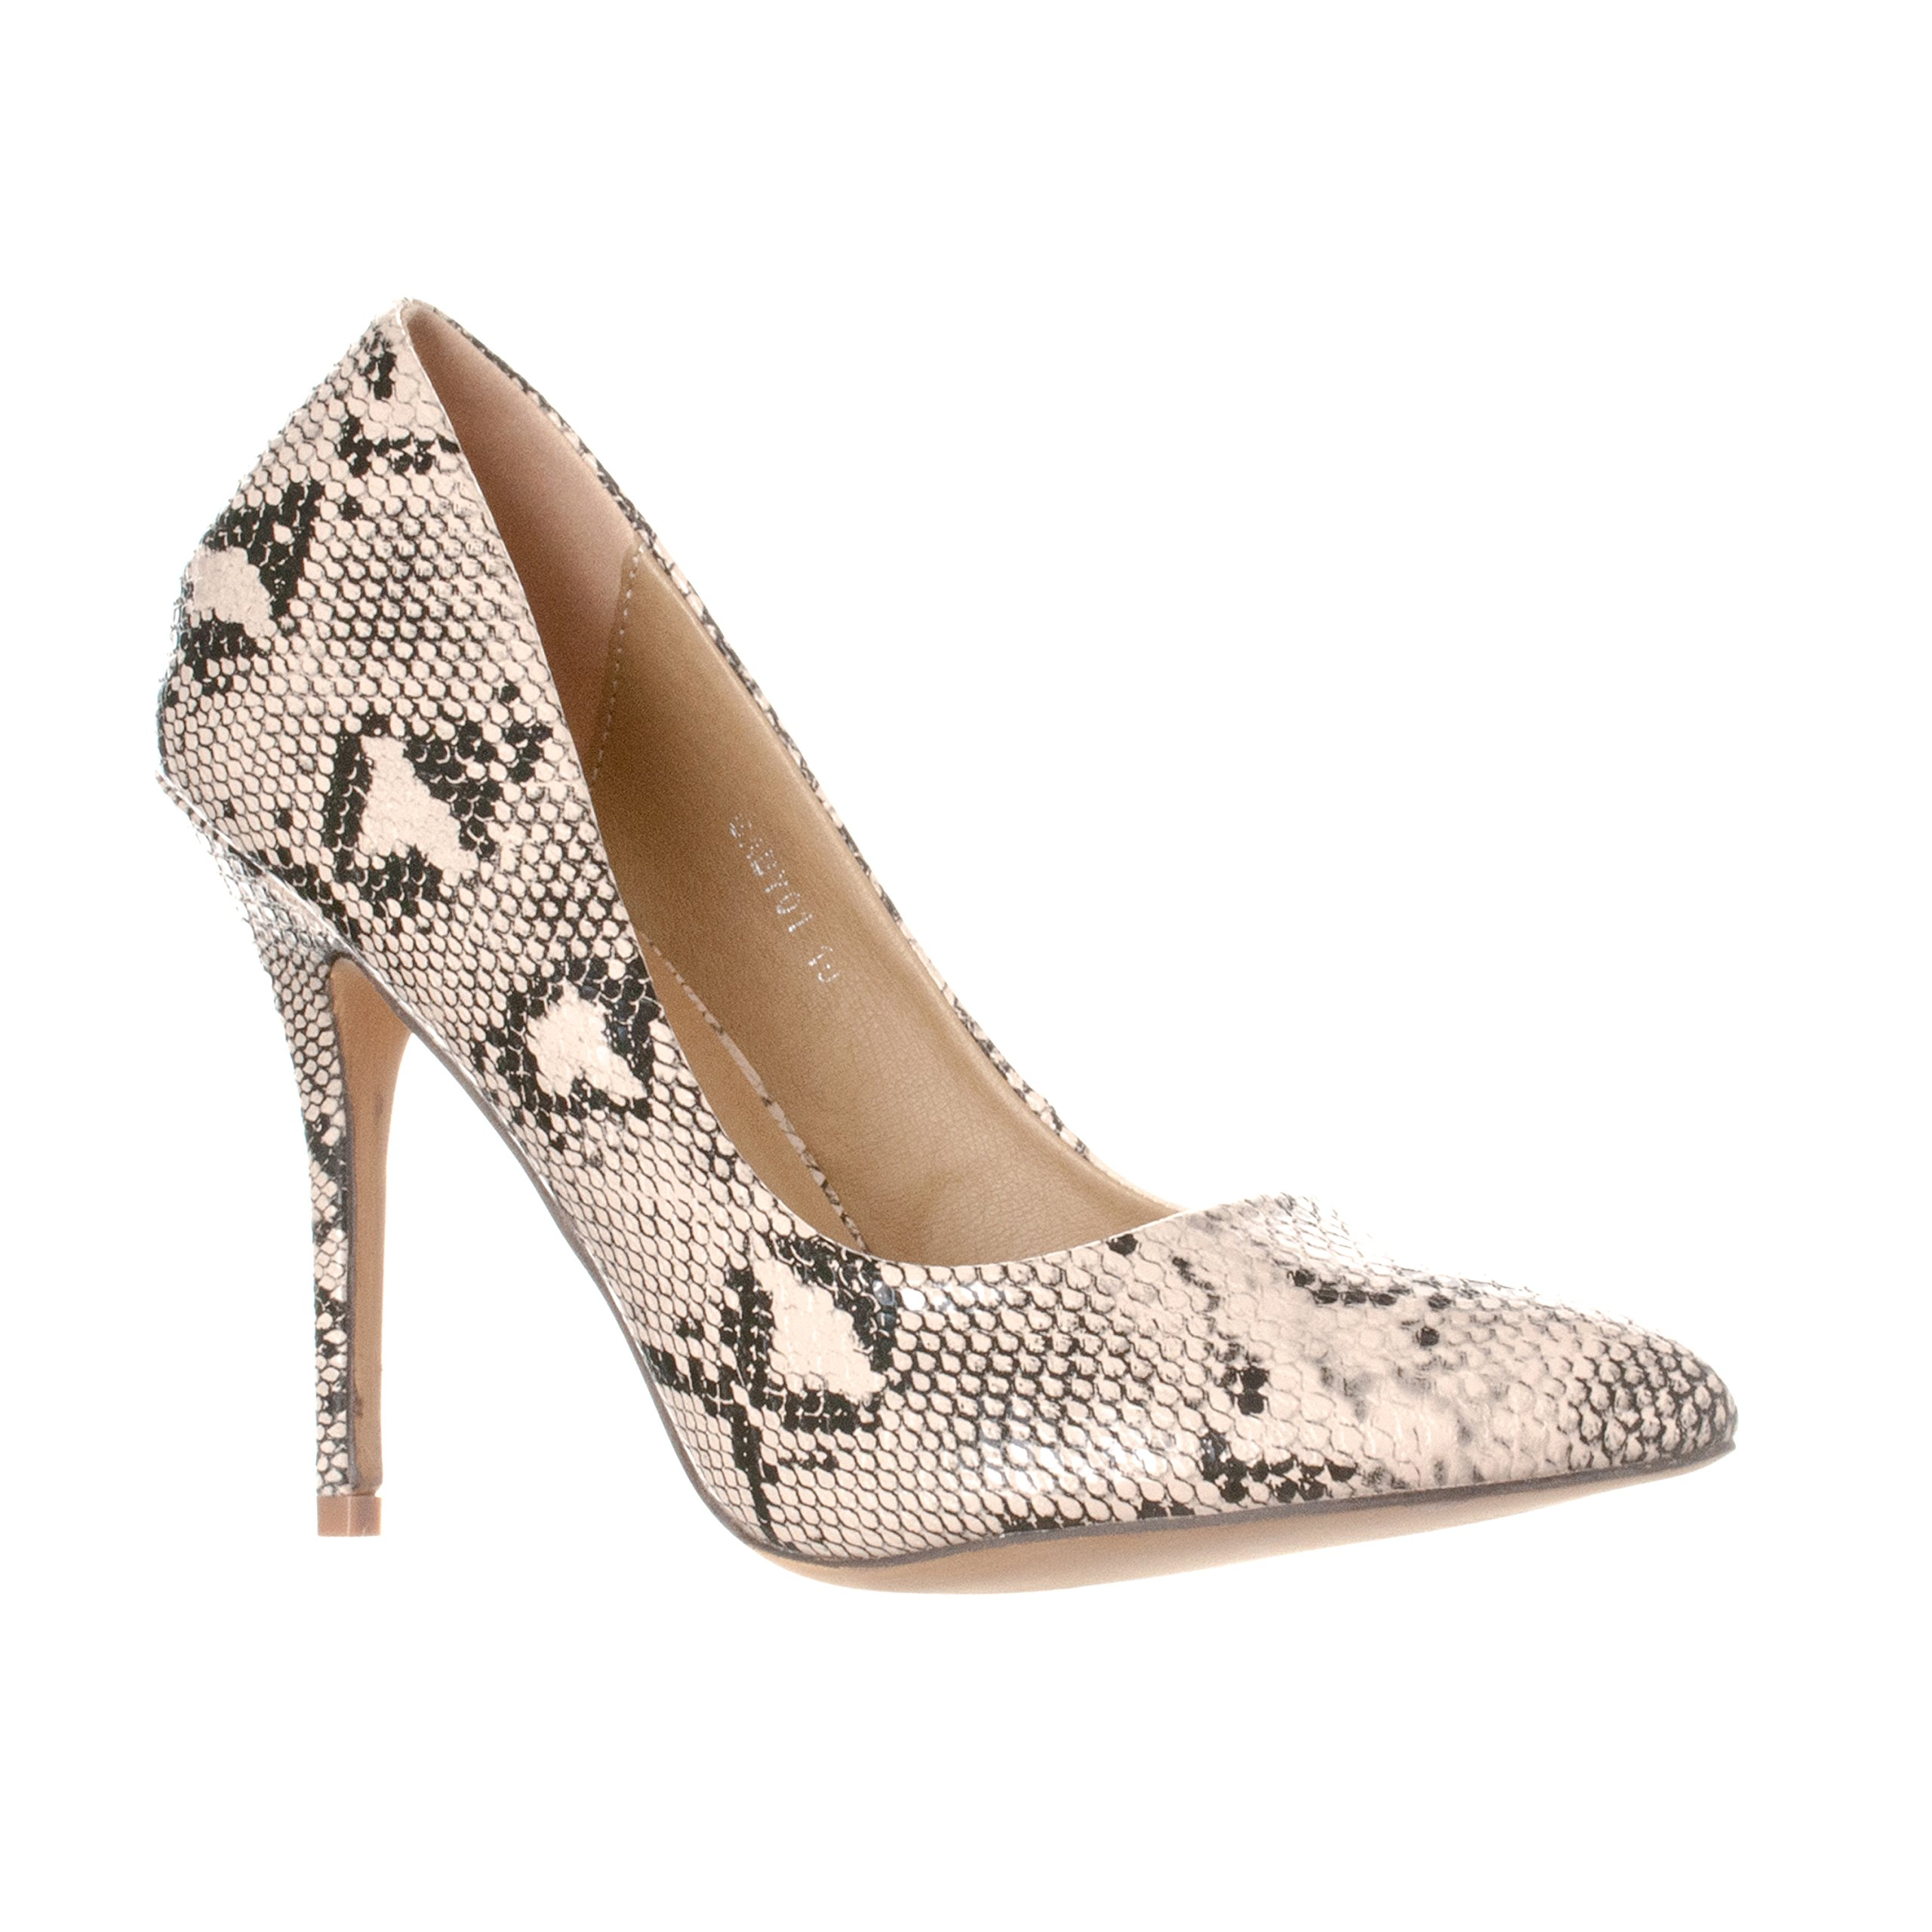 Riverberry Women's Gaby Pointed, Closed Toe Stiletto Pump Heels, Beige Python, 7